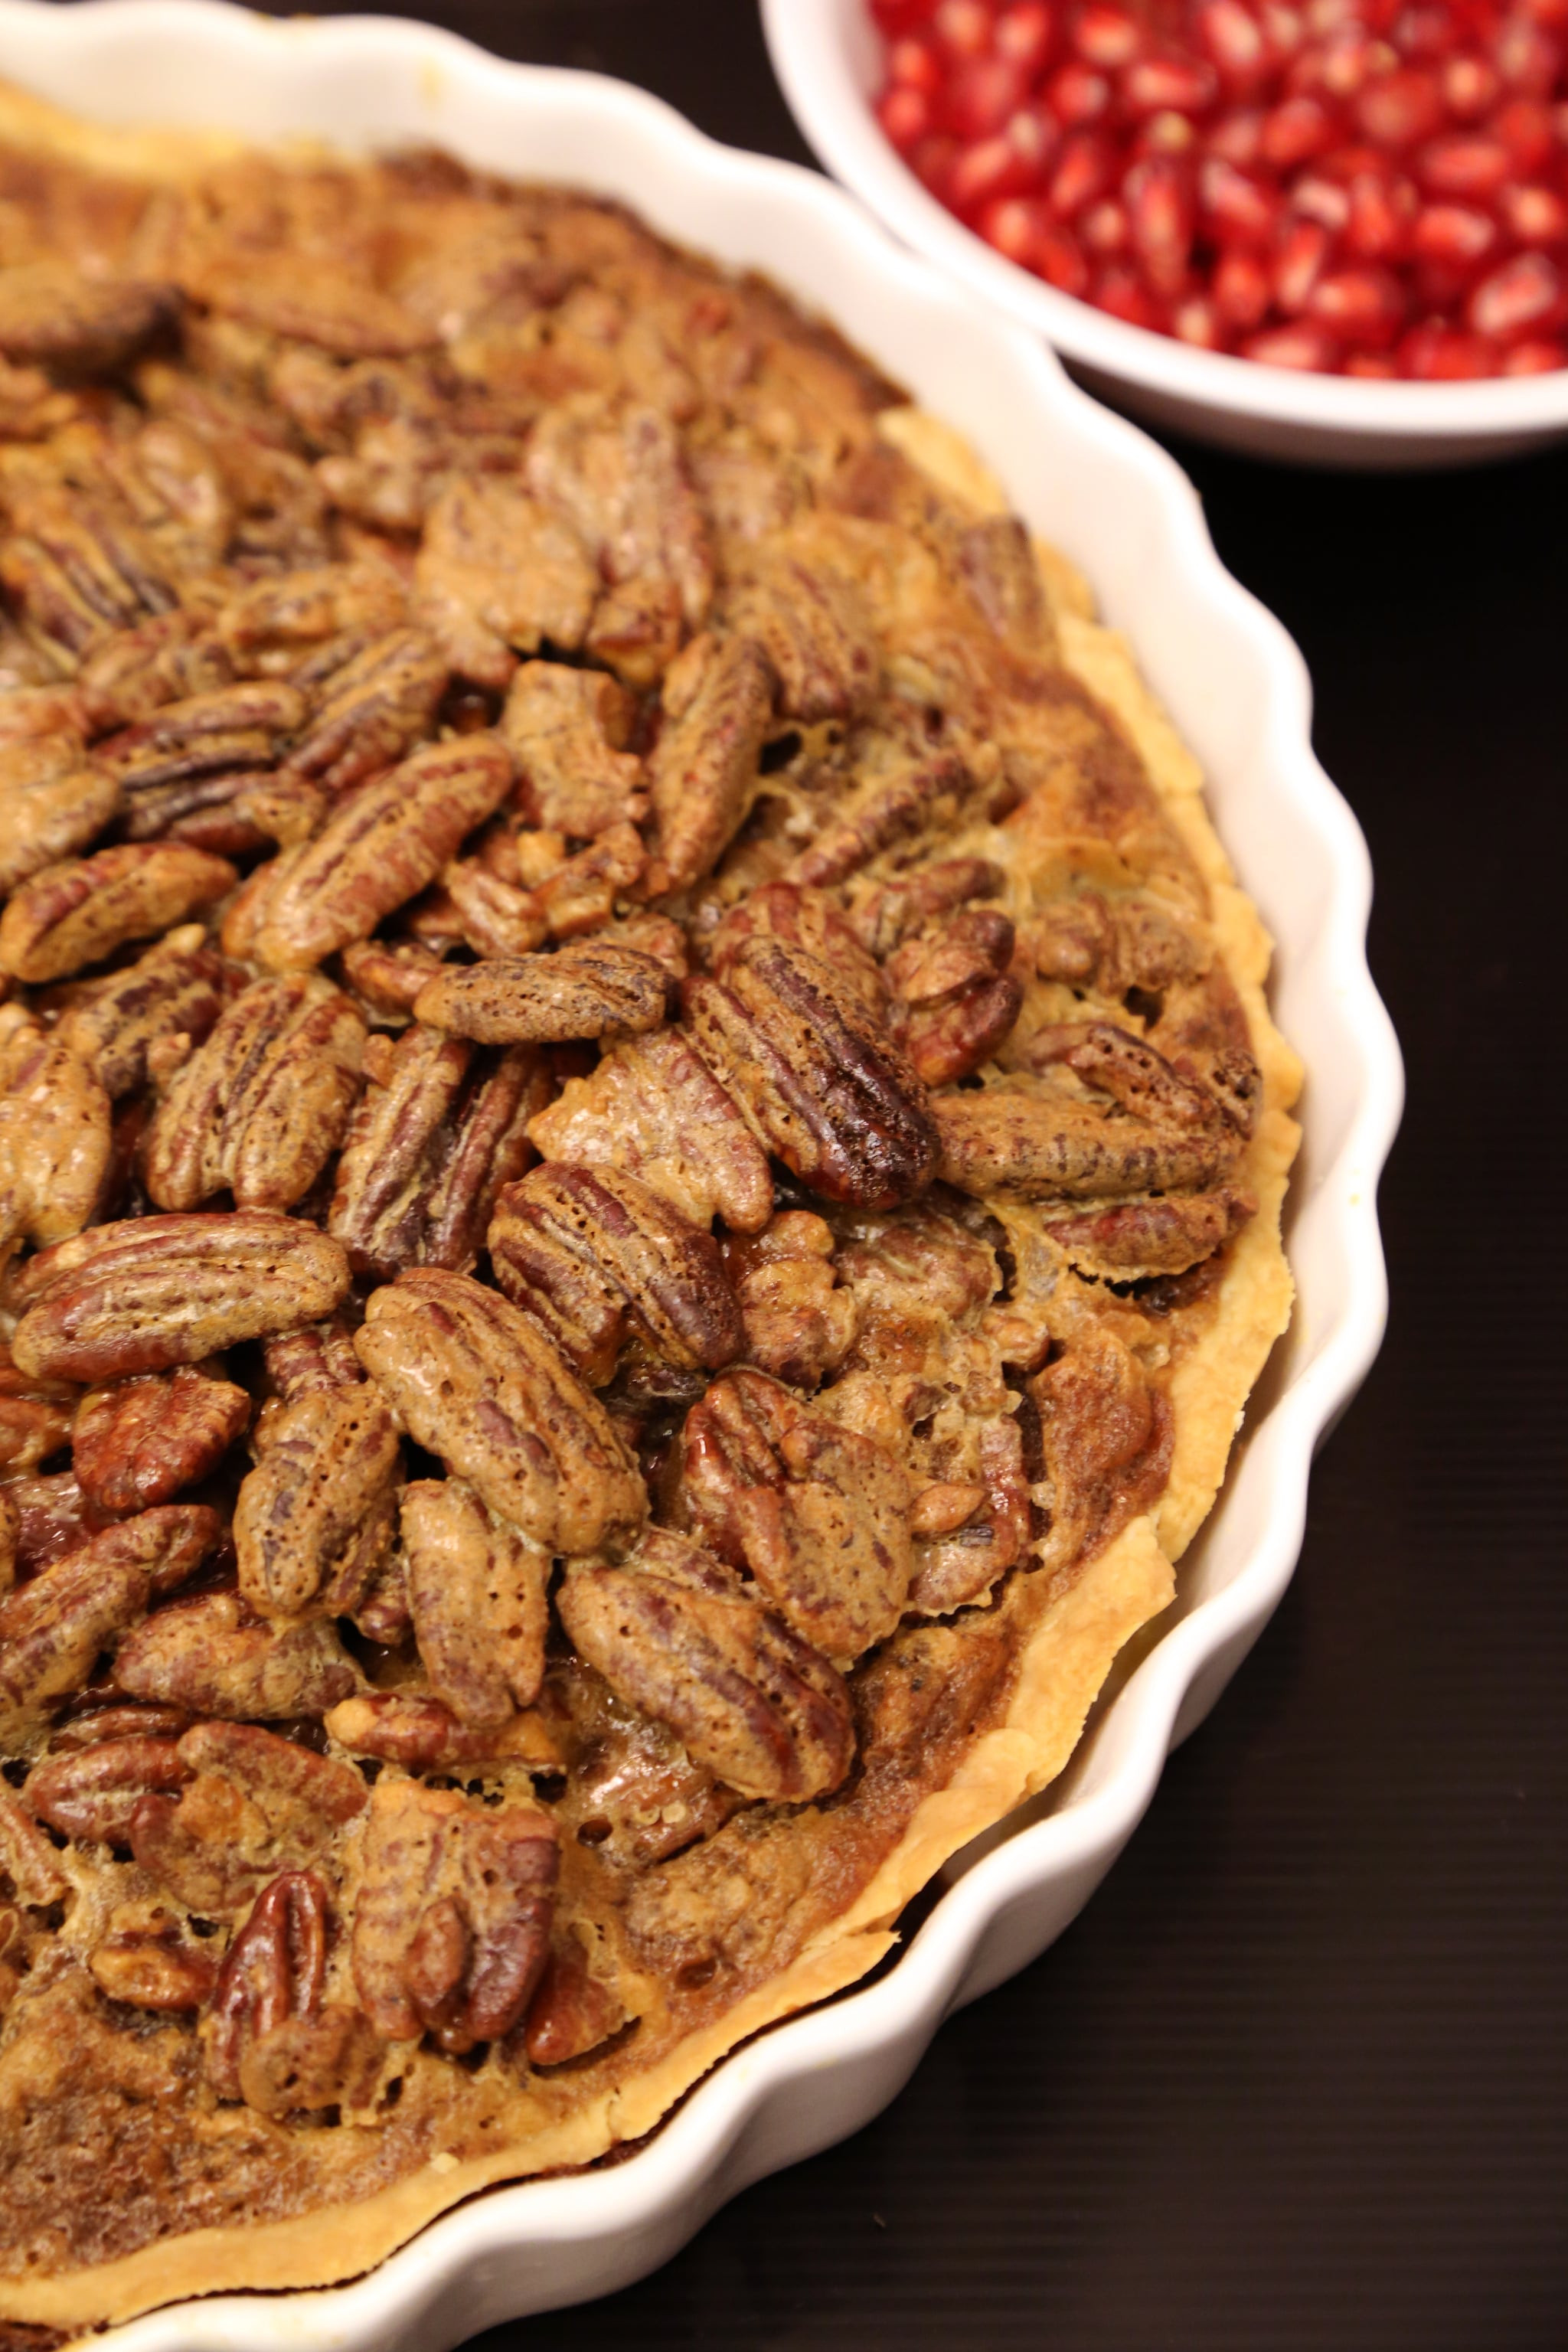 How To Make A Pecan Pie  Mark Bittman s Pecan Pie Recipe